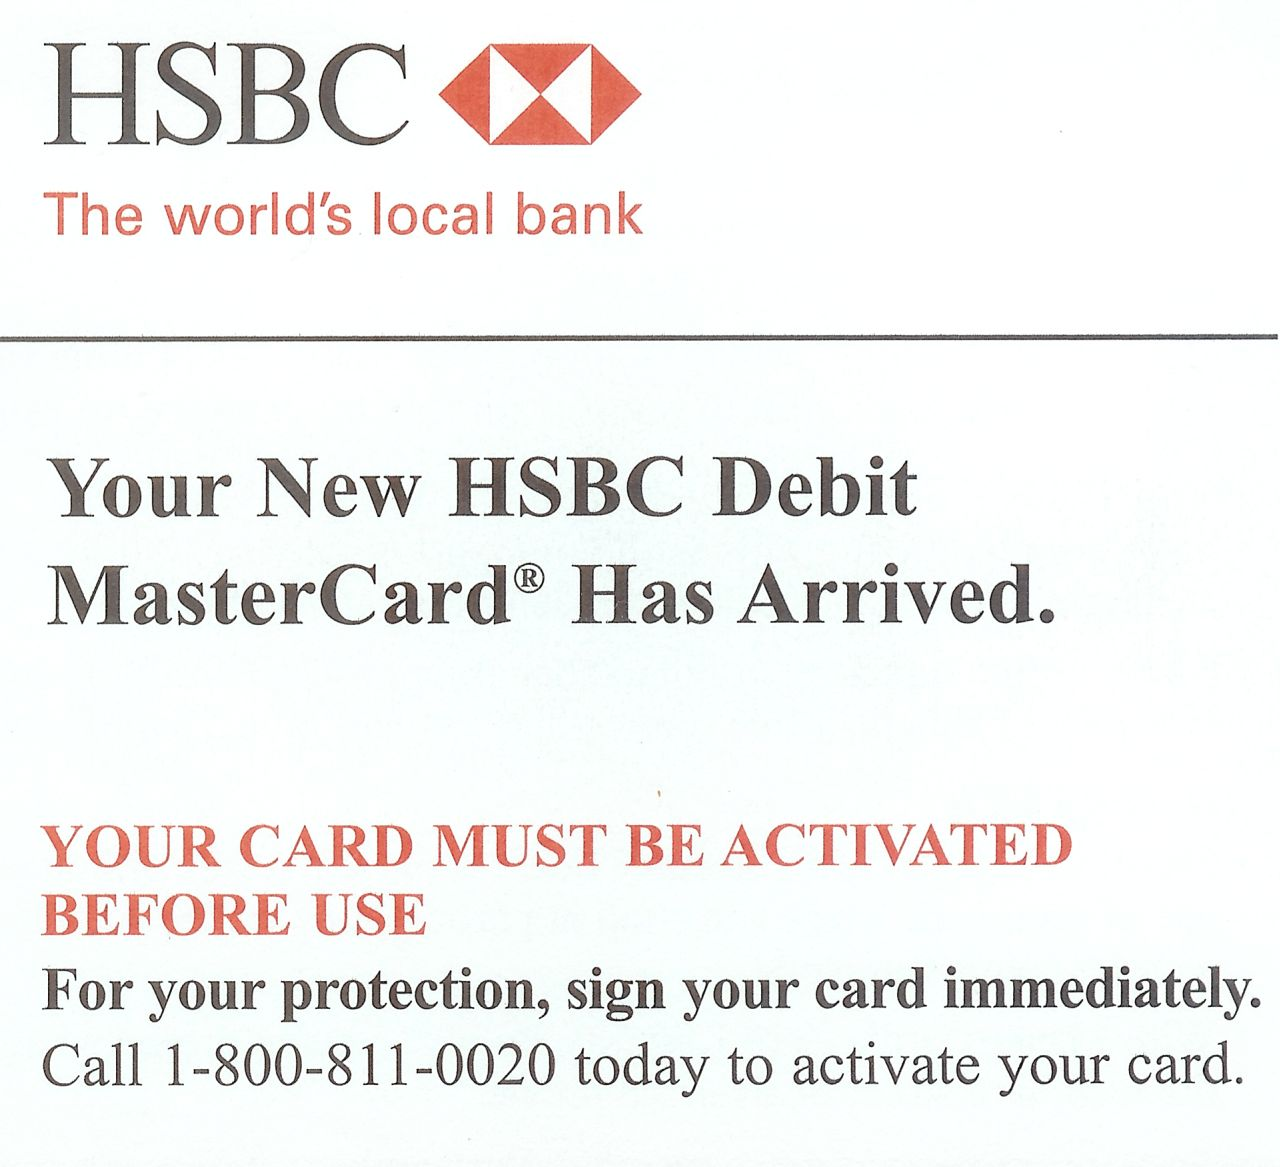 hsbc sends activated debit cards through mail